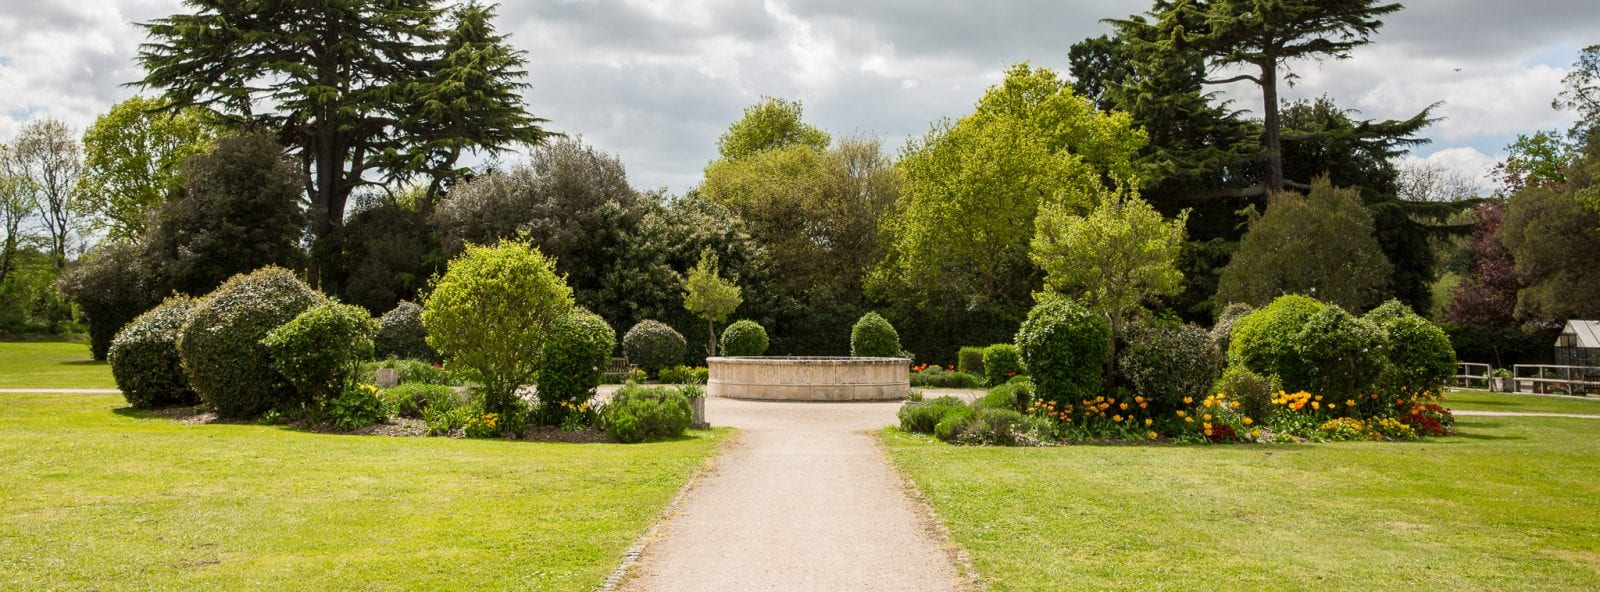 Gardens at Strode Park House